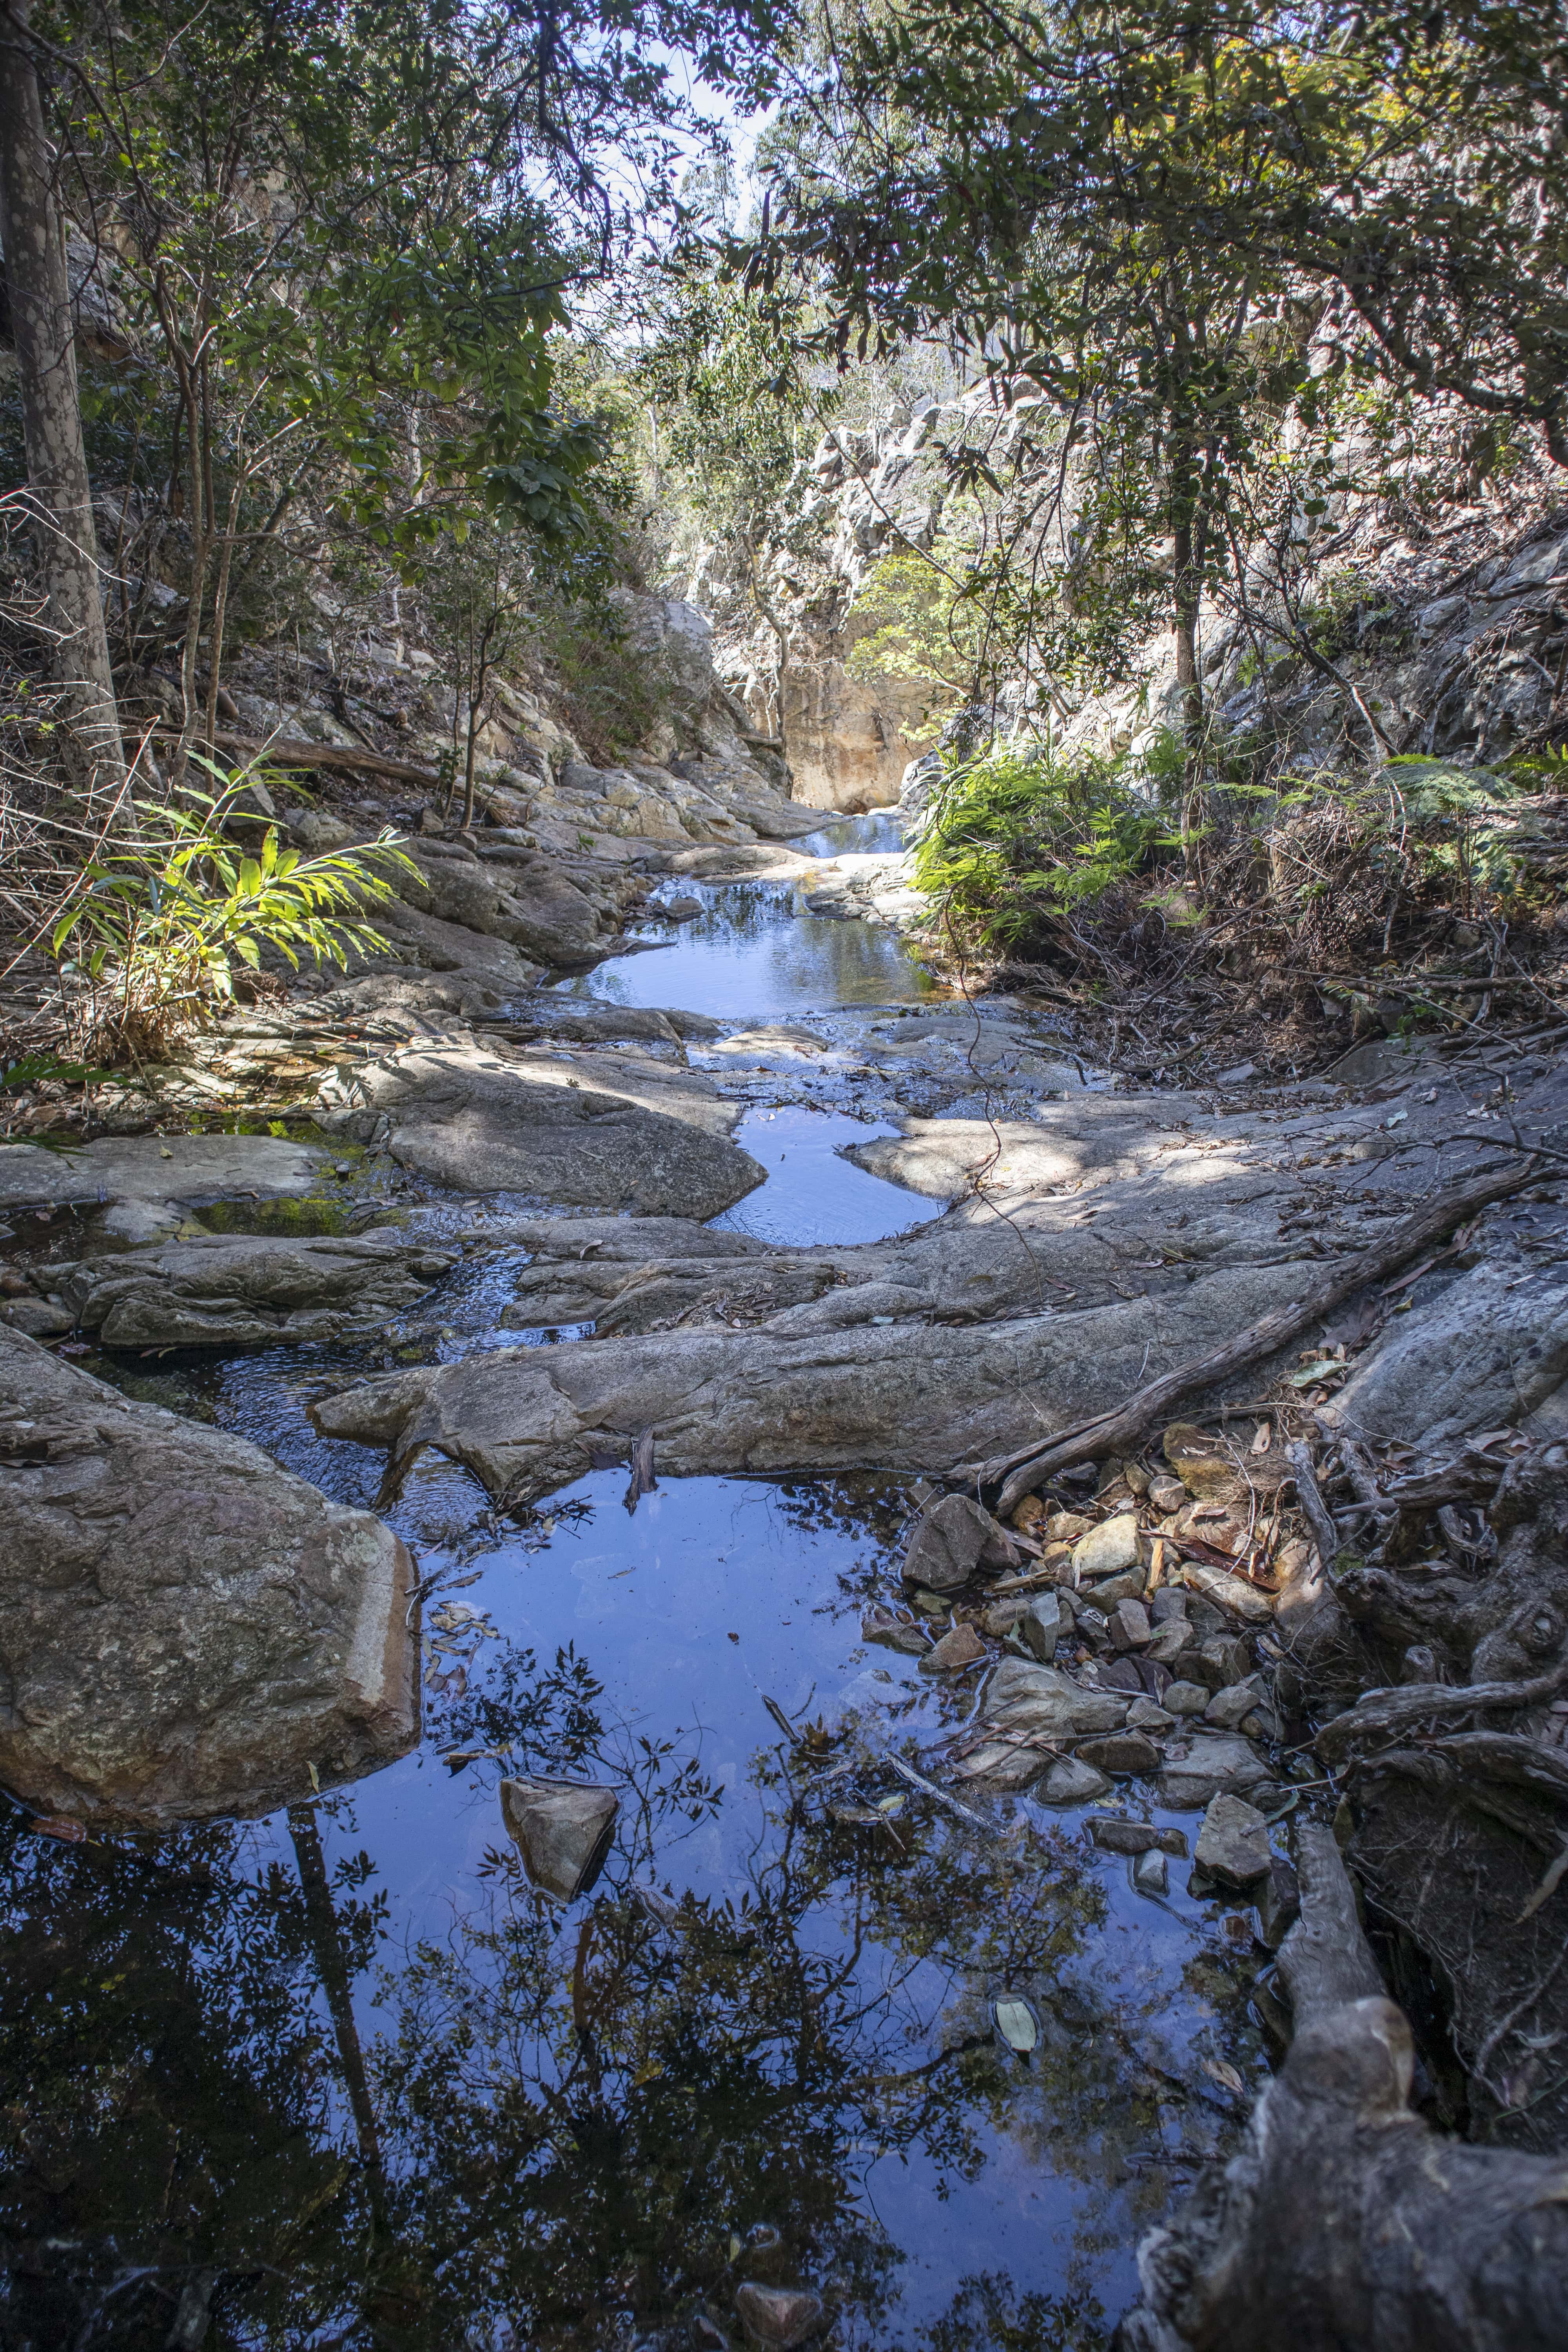 waterfall gorge in moogerah peaks national park close to brisbane and the gold coast